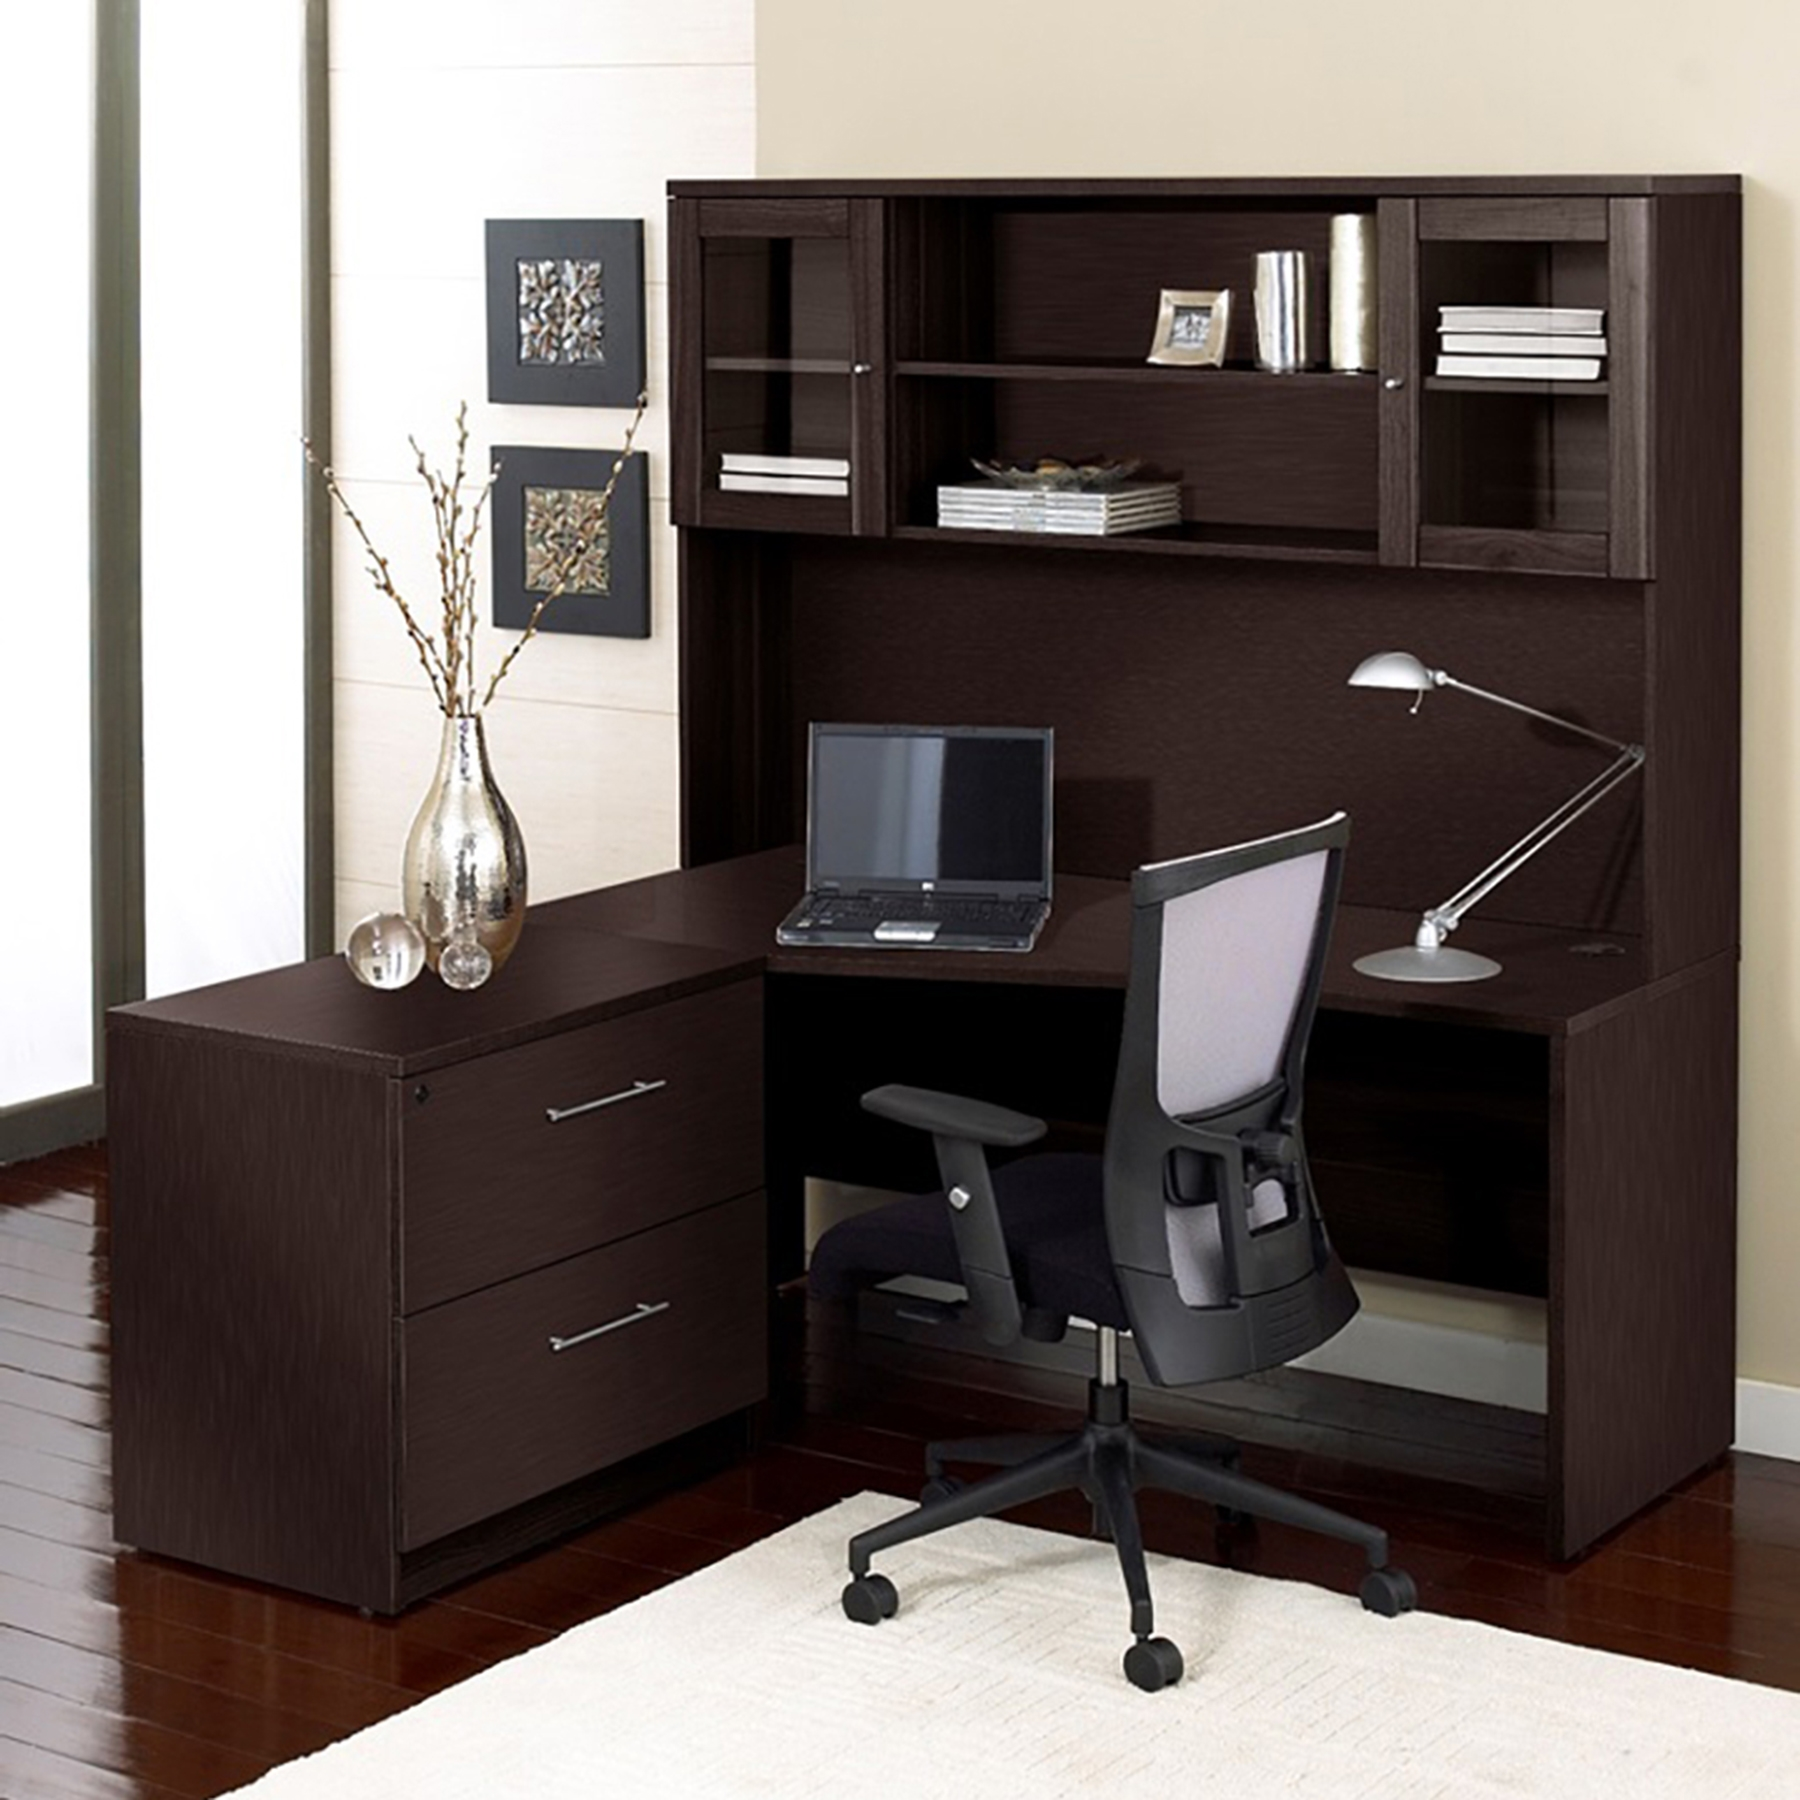 100 Series Corner L Shaped Desk   Hutch, Lateral File, Left Side   UNIQ ...